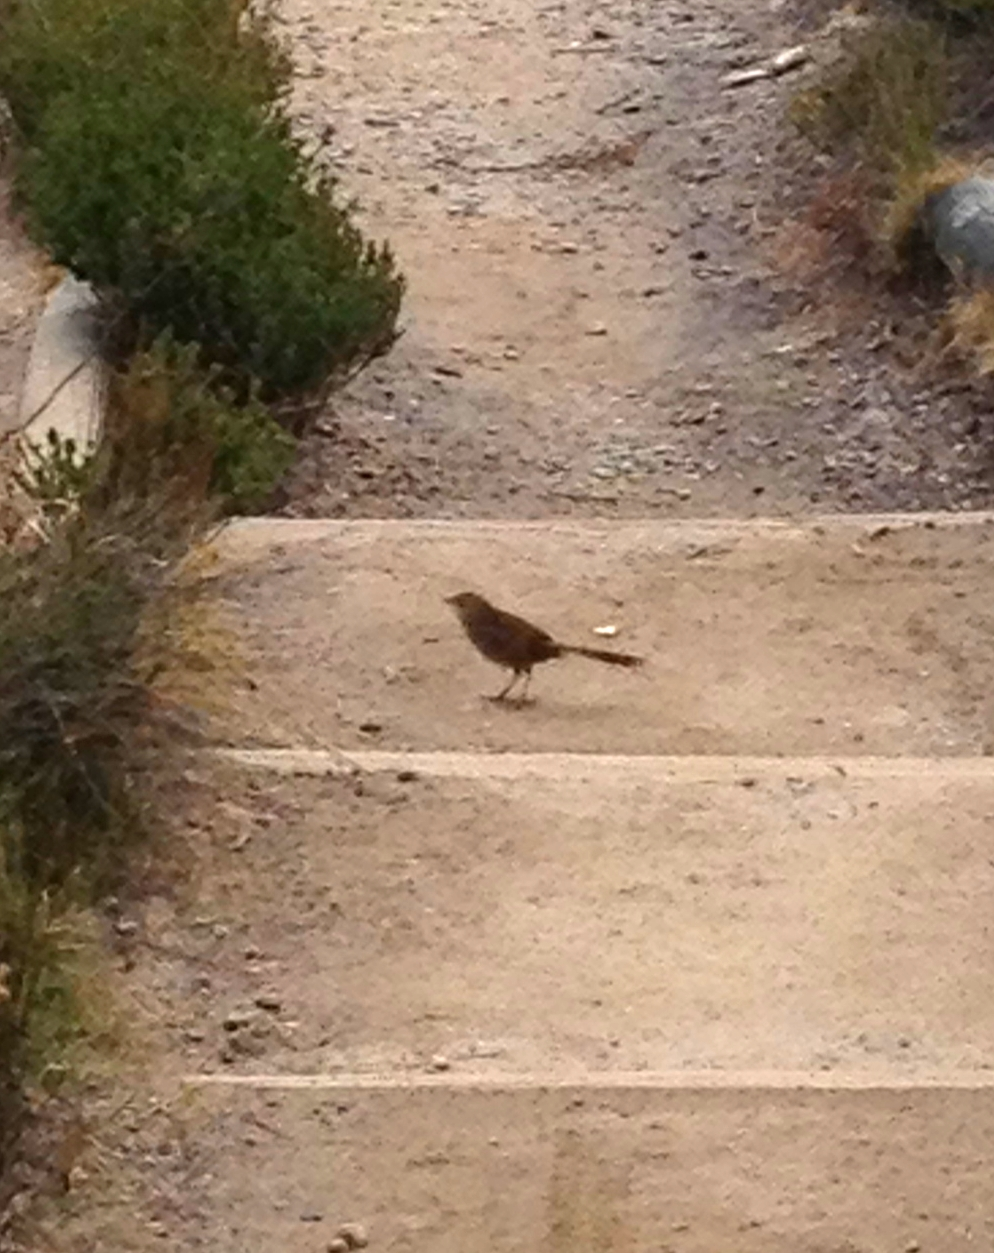 The endangered Eastern Bristlebird. Awesome wildlife photography courtesy of me and my iPhone 4S.